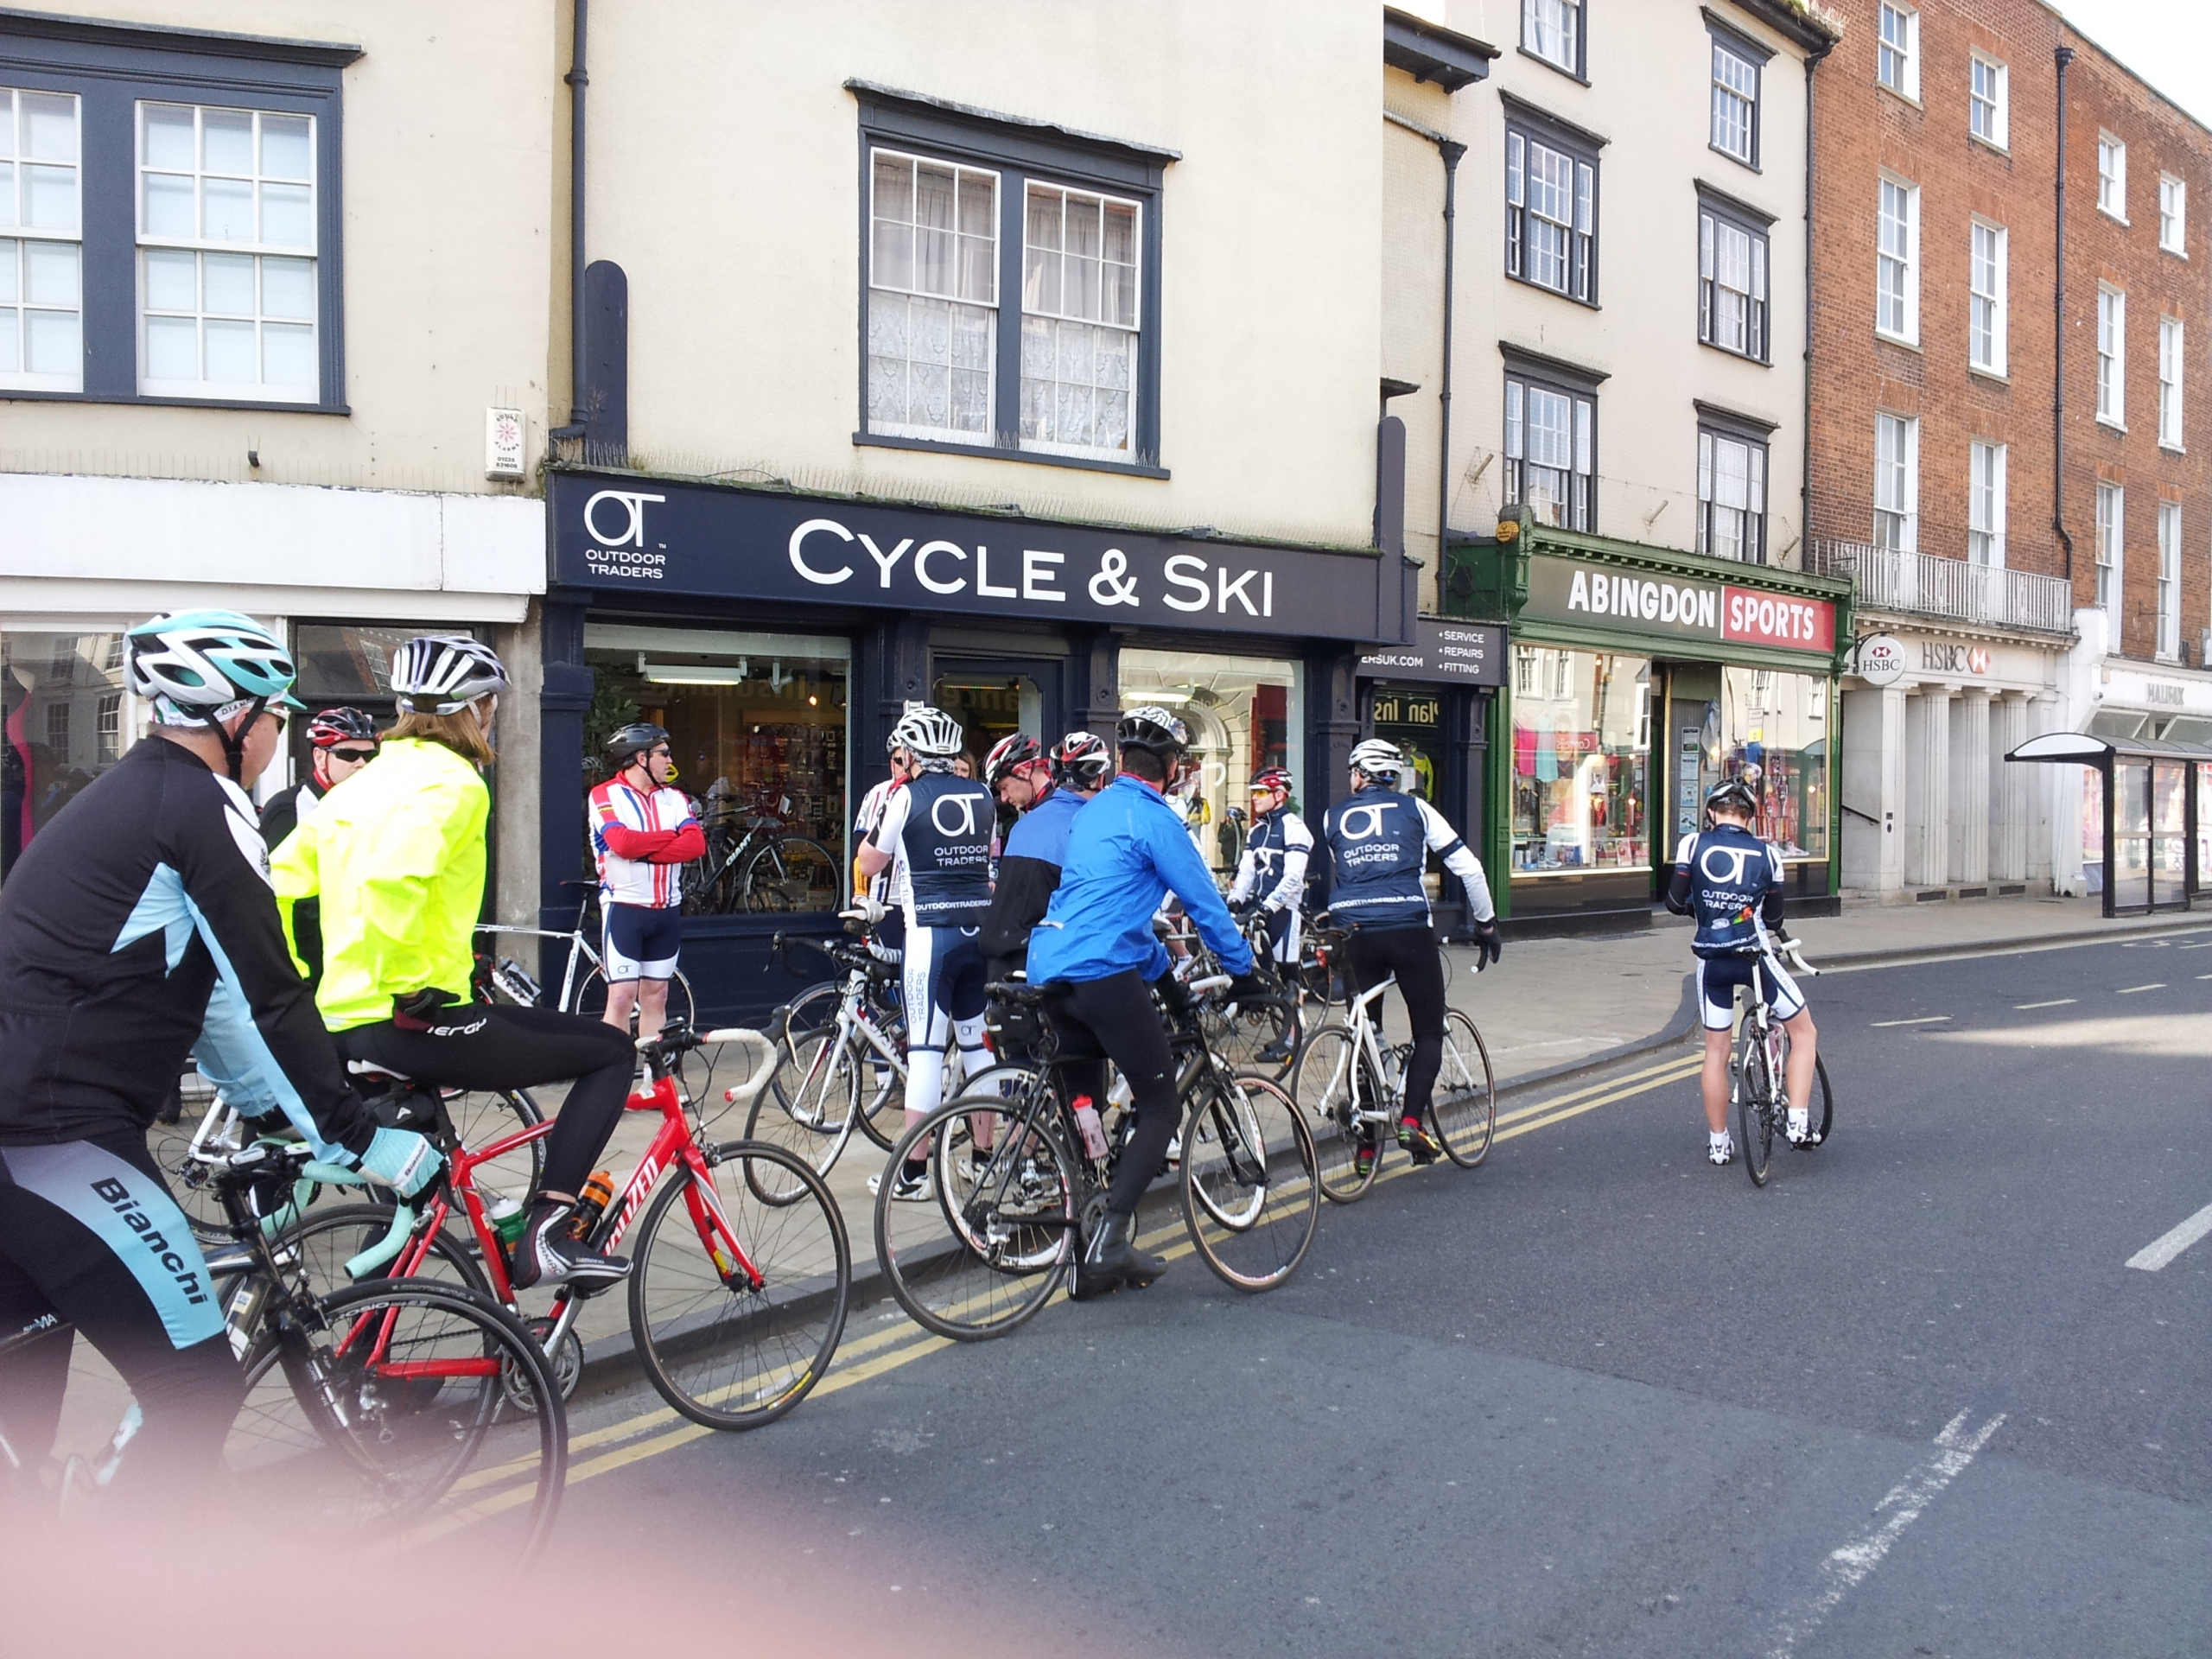 Cyclists on their bikes waiting to set off on a ride from Outdoor Traders shop on the High Street